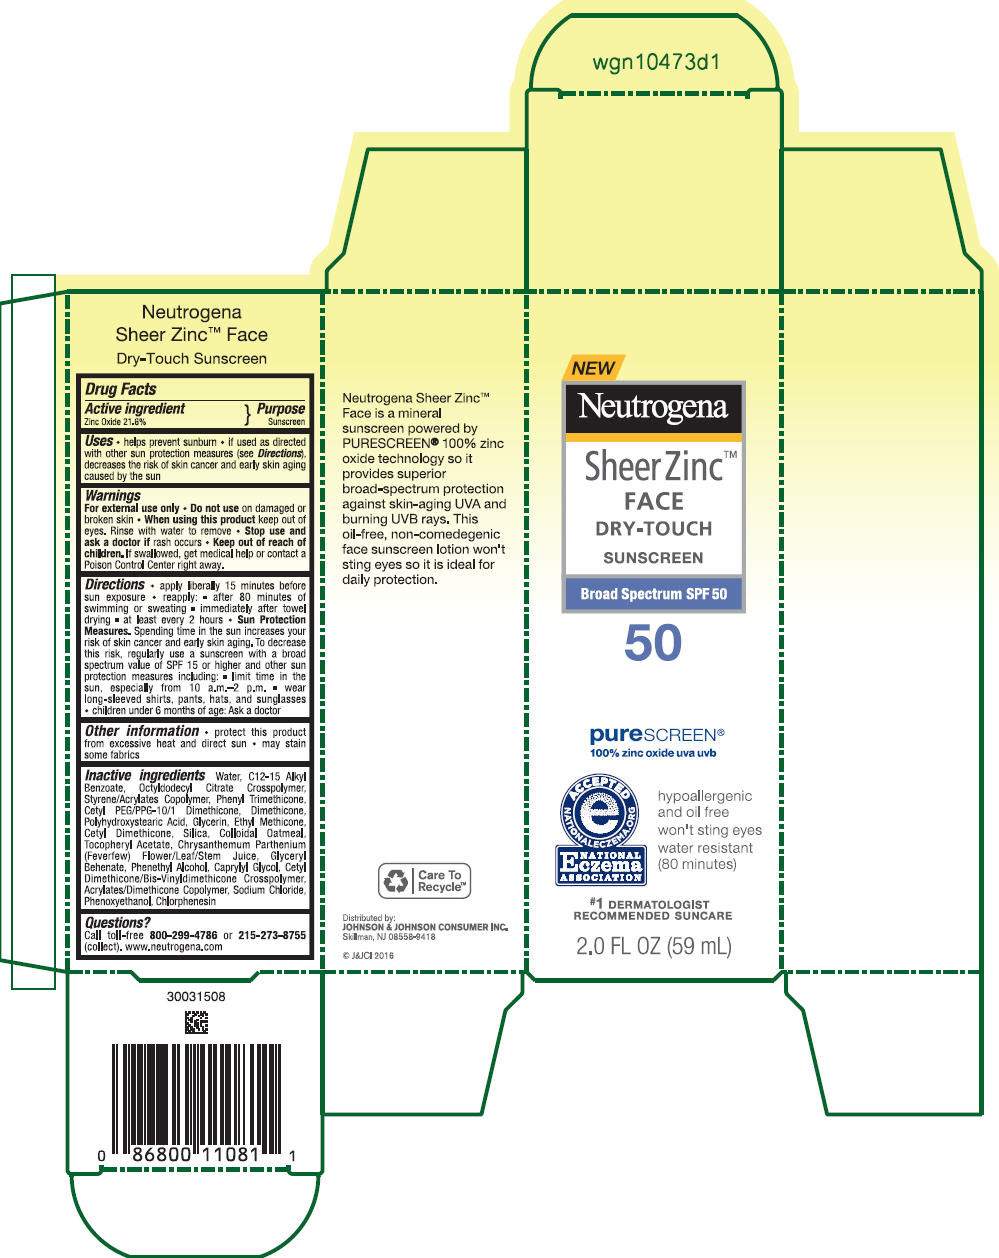 PRINCIPAL DISPLAY PANEL - 59 mL Tube Carton